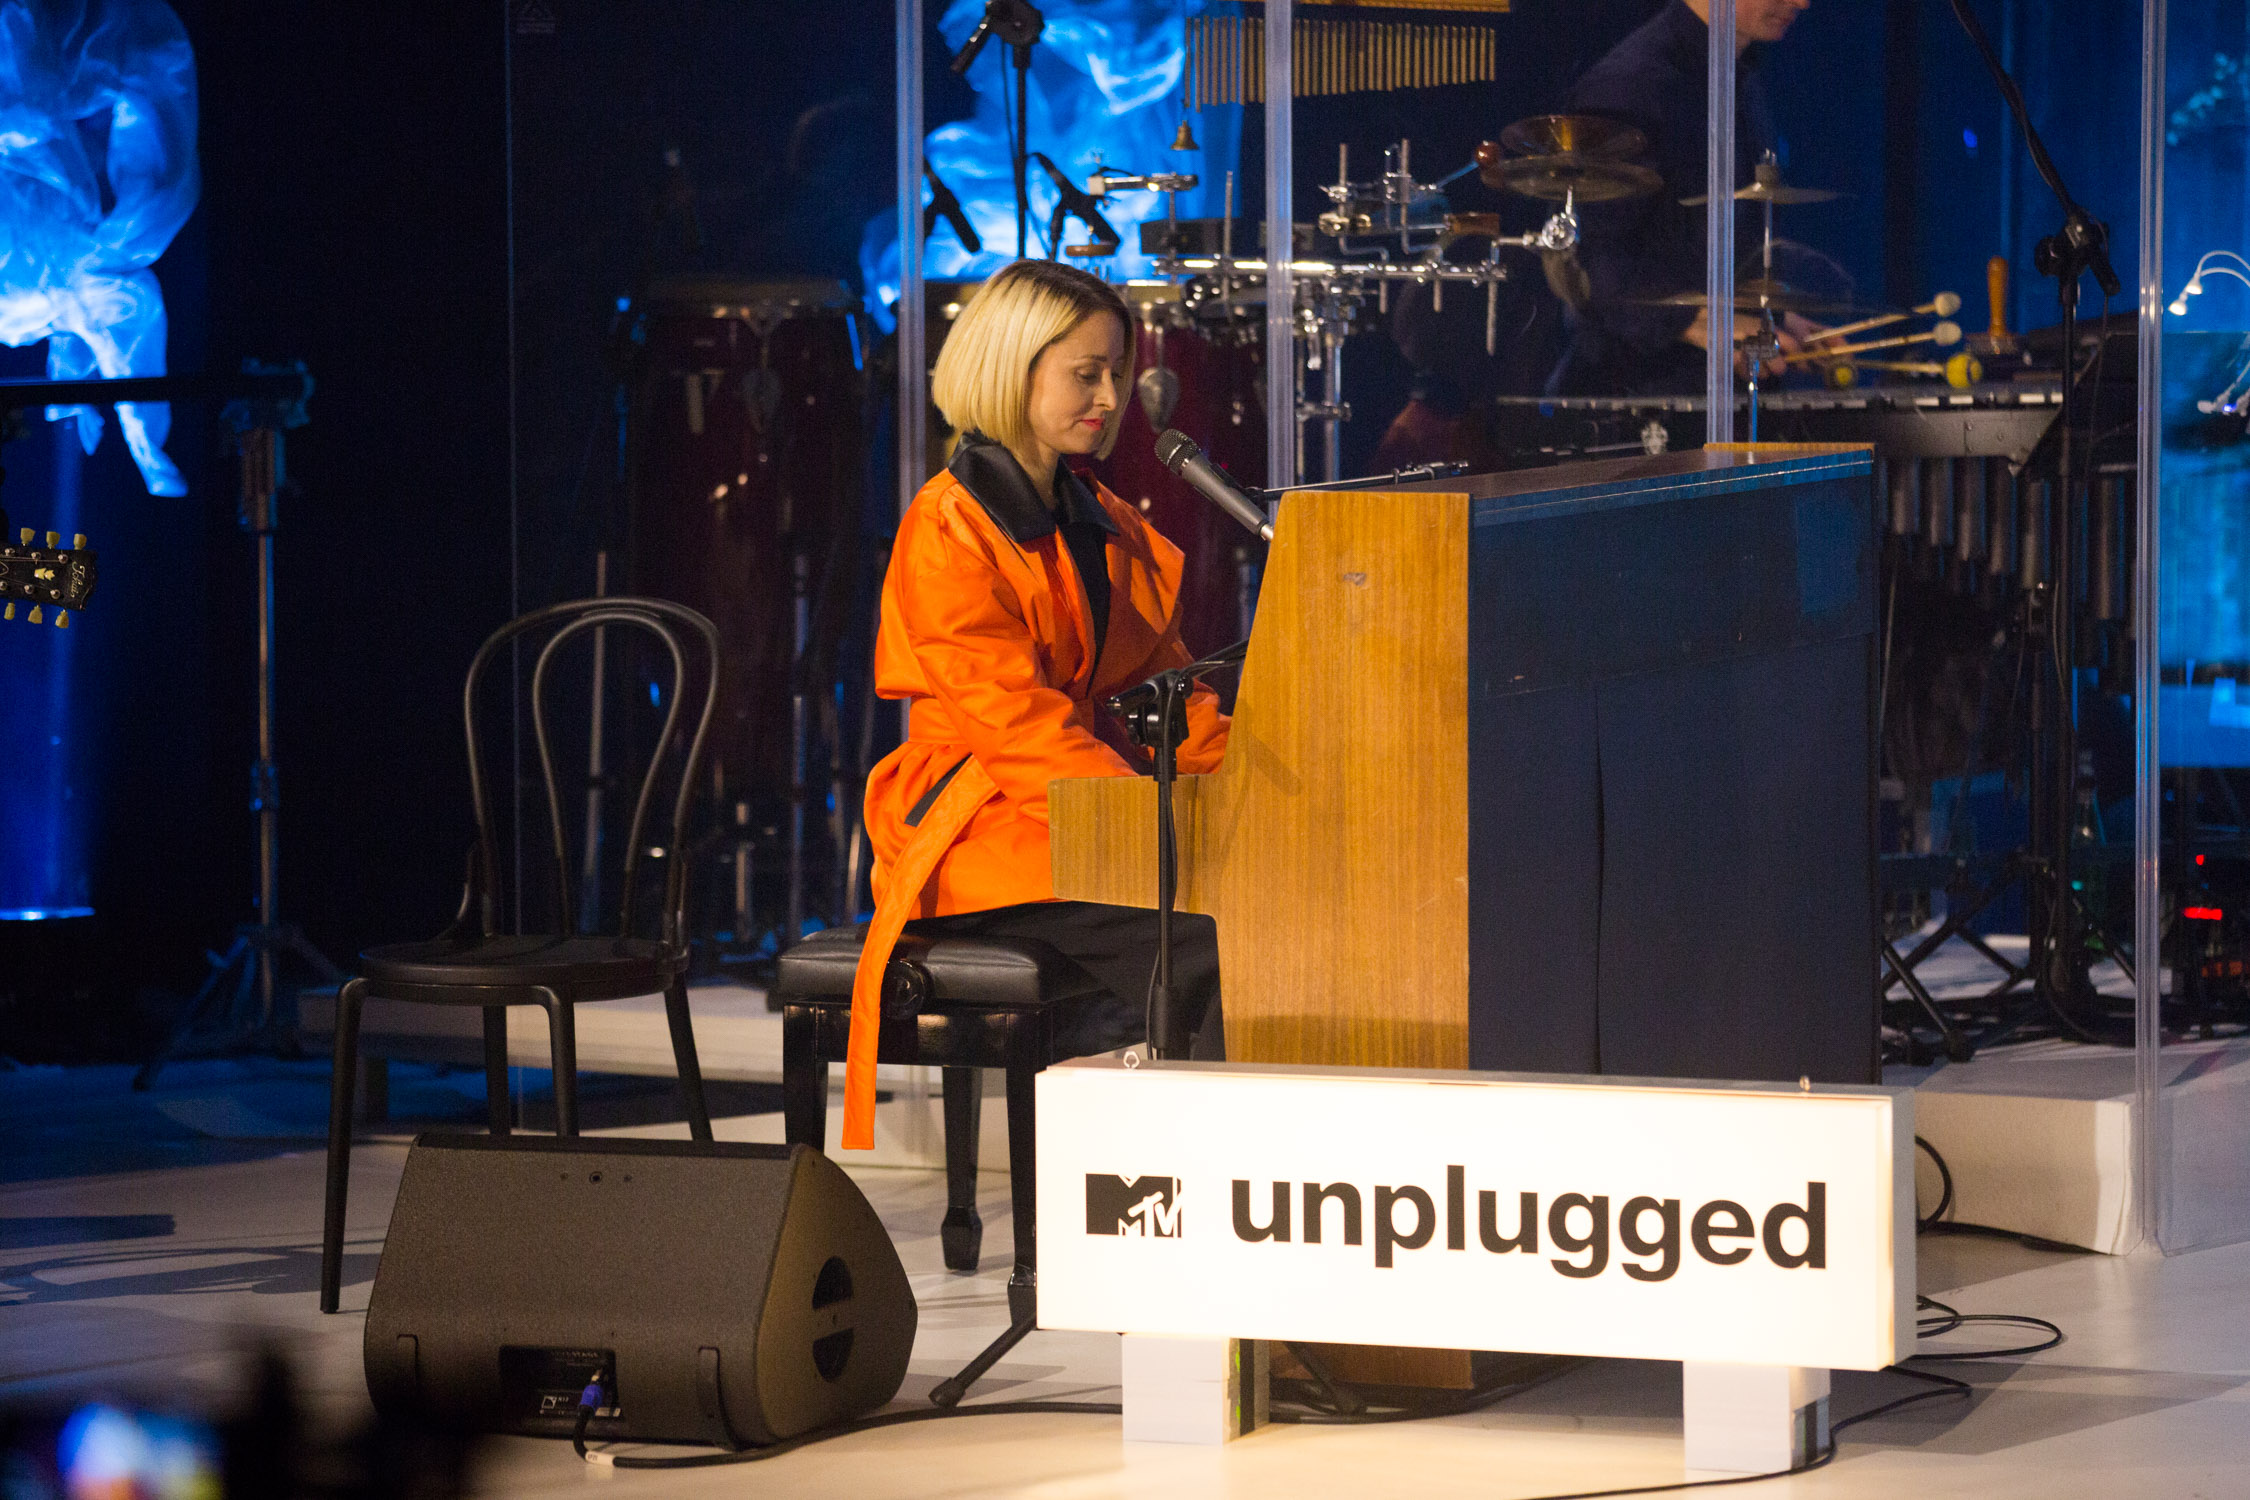 MTV Unplugged - Fot. Barbara Wadach